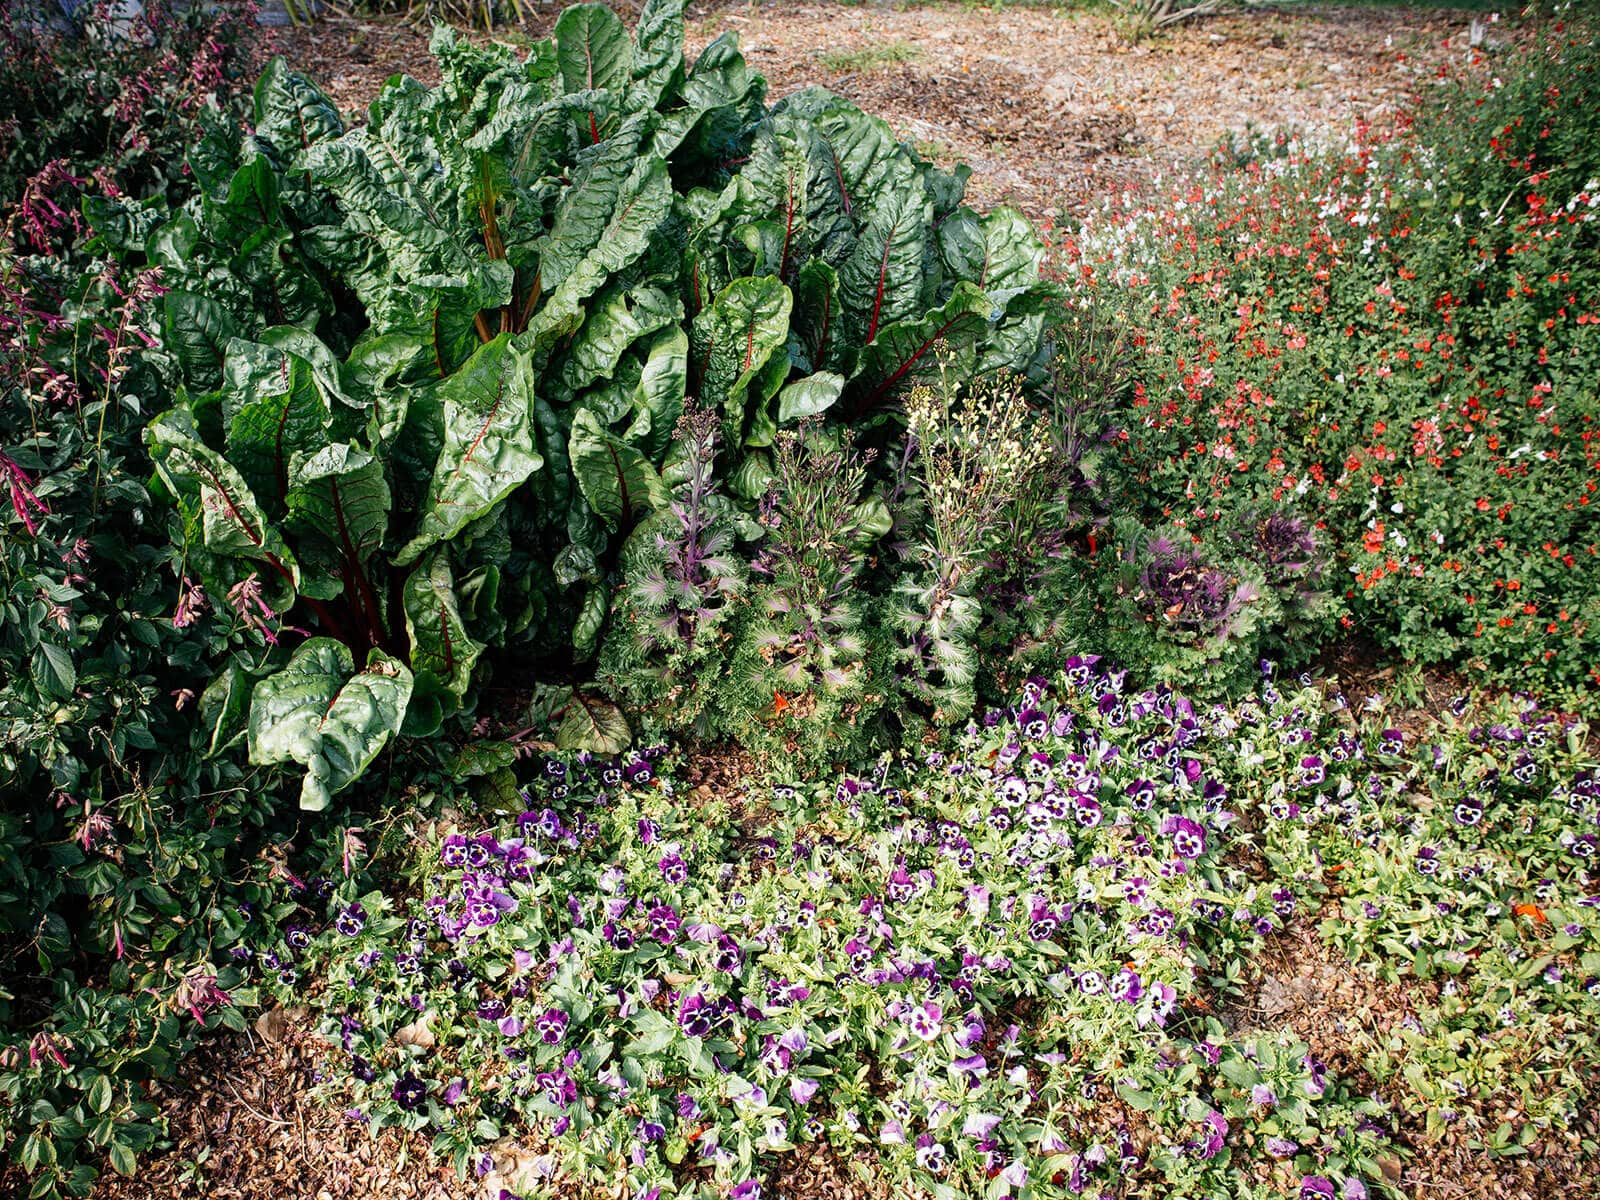 Viola acts as a living mulch for chard and ornamental cabbage